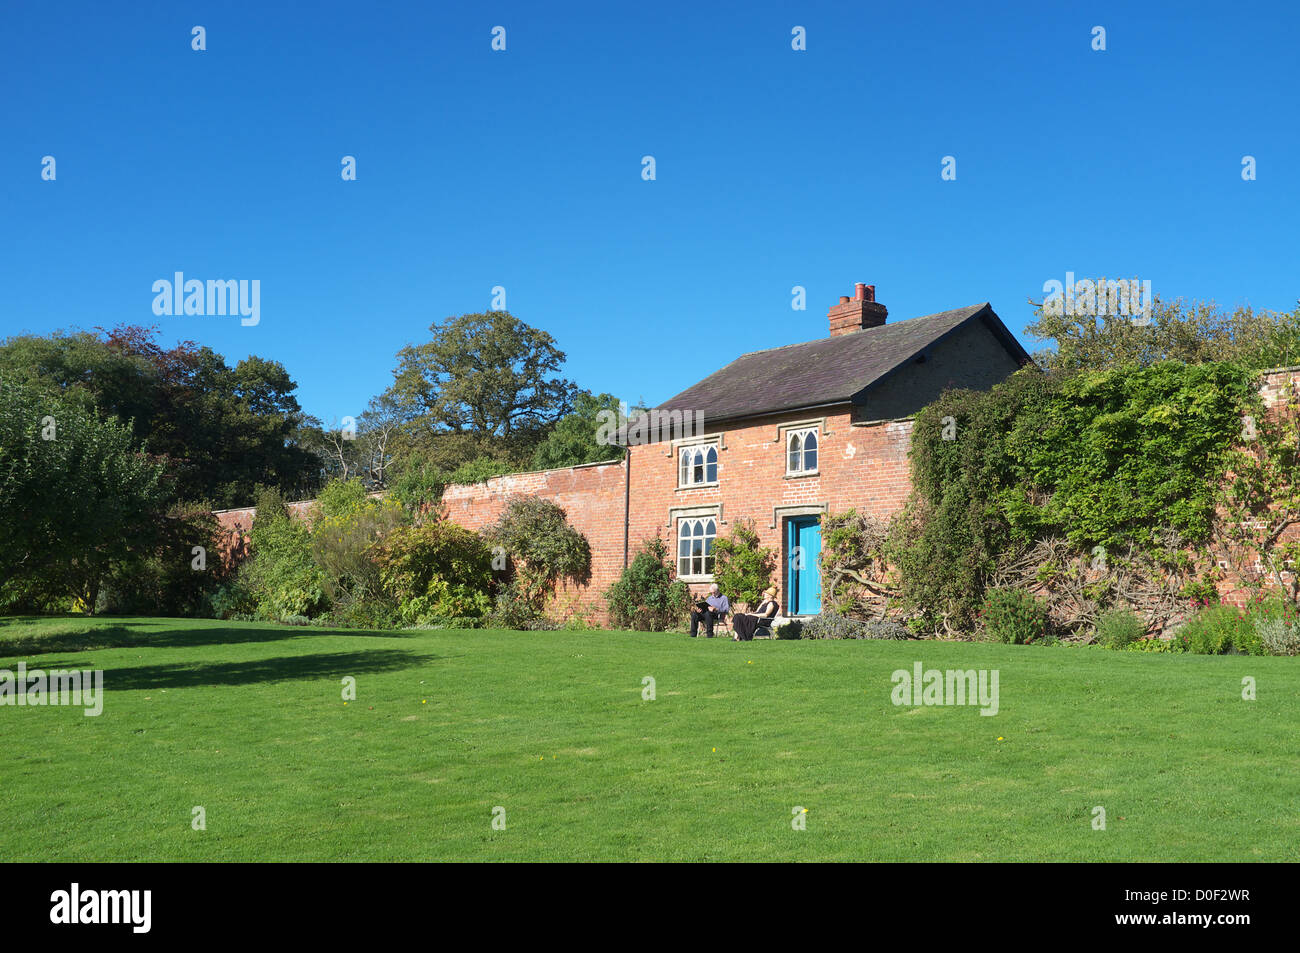 Gardeners cottage in the walled garden, Croft Castle, Herefordshire, England, UK - Stock Image